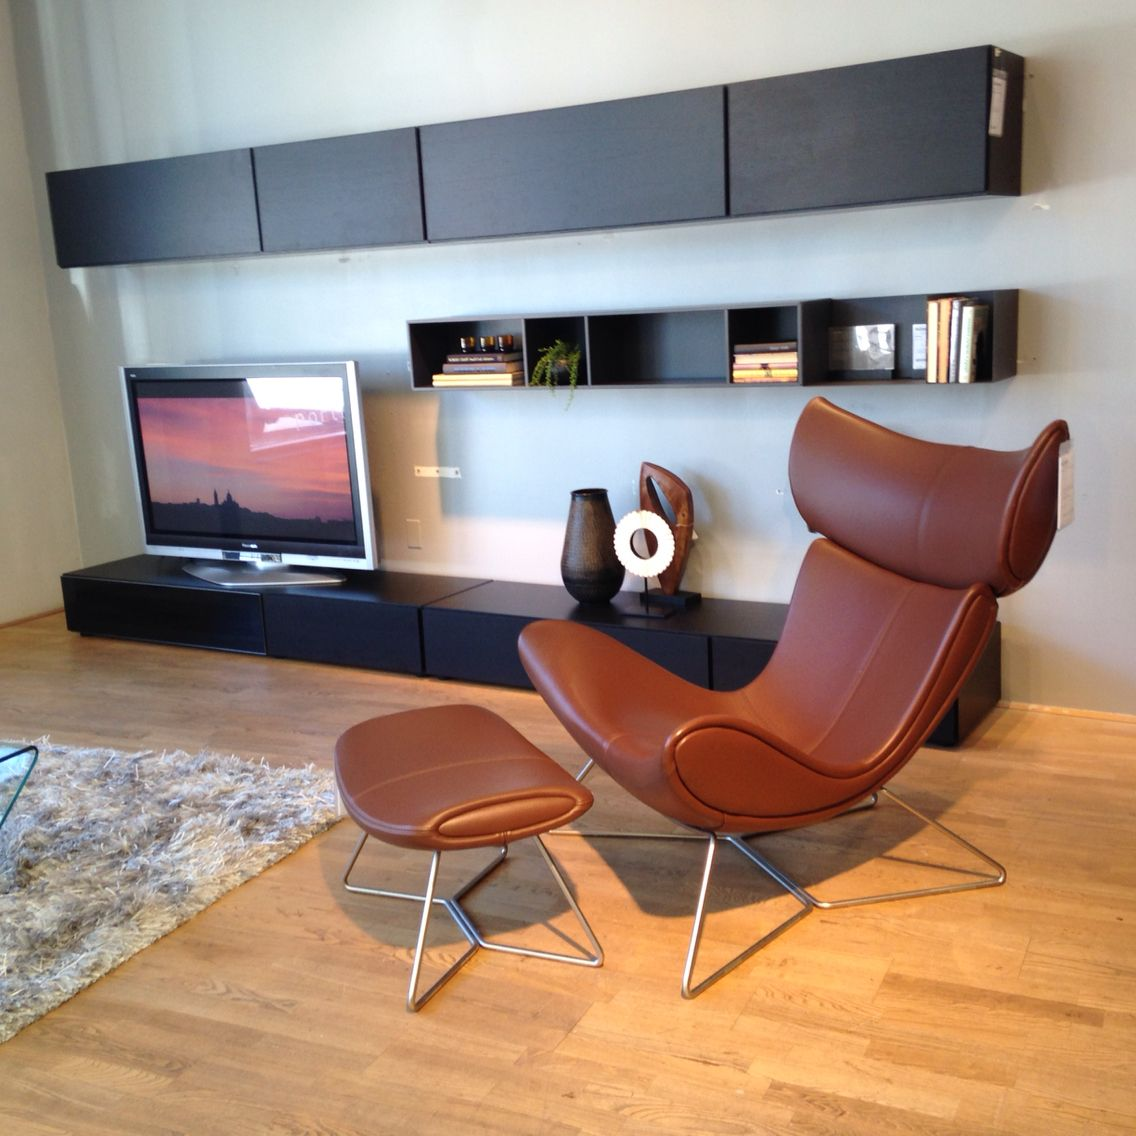 Boconcept Imola Chair And Lugano Wall System